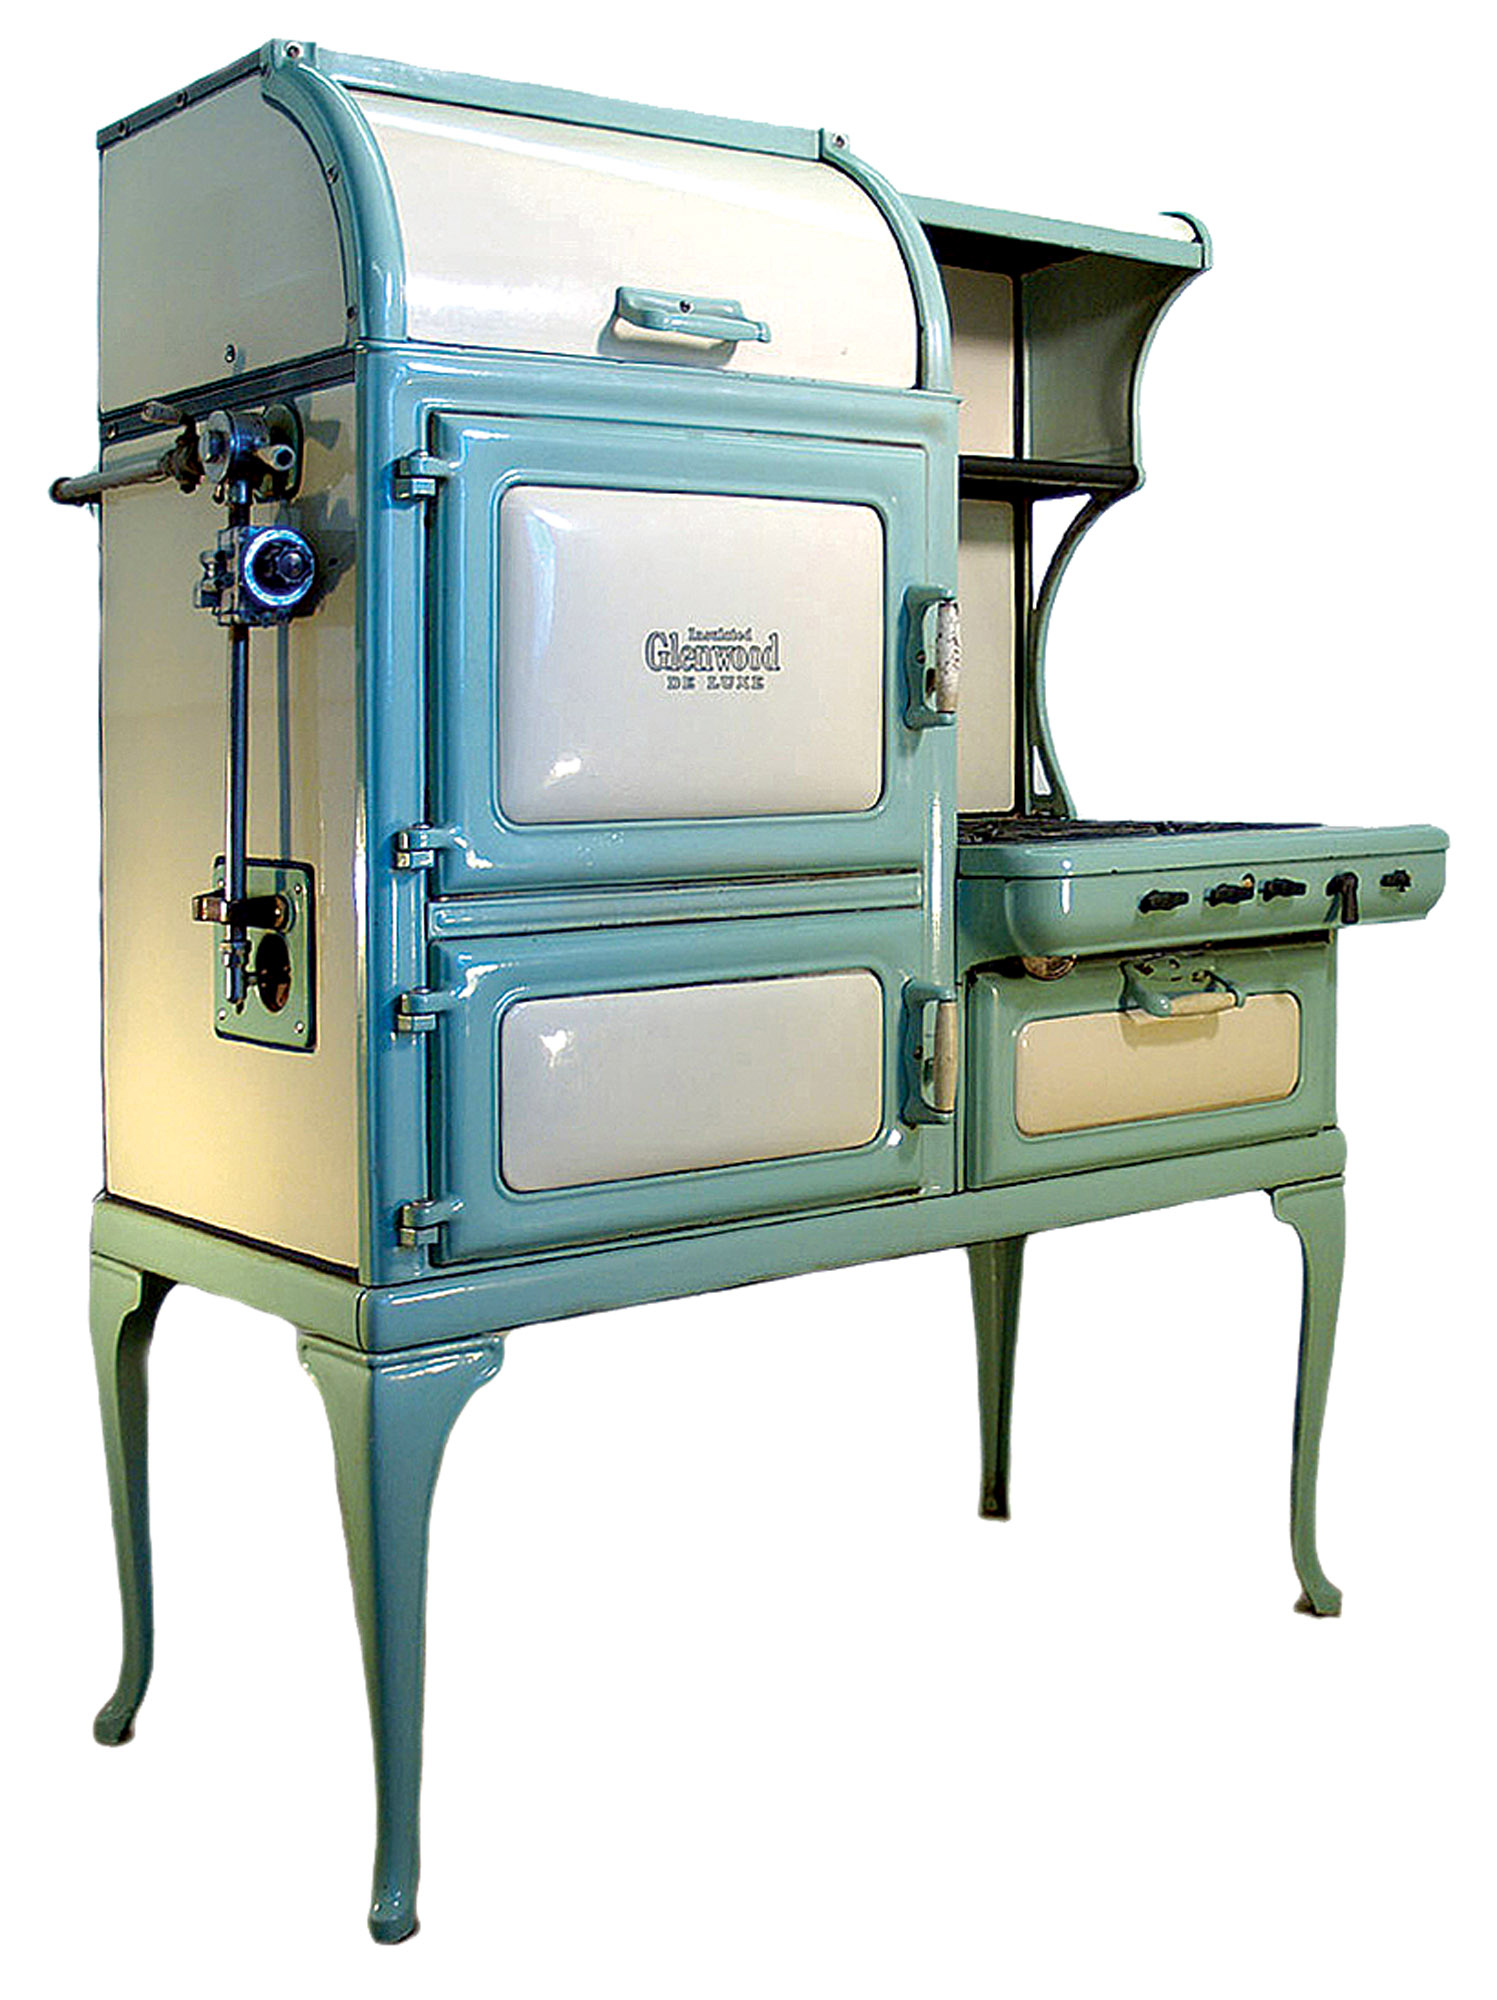 Many a kitchen palette has been based on Glenwood's unique eggshell-and-green stoves. This refurbished model is from Good Time Stove.